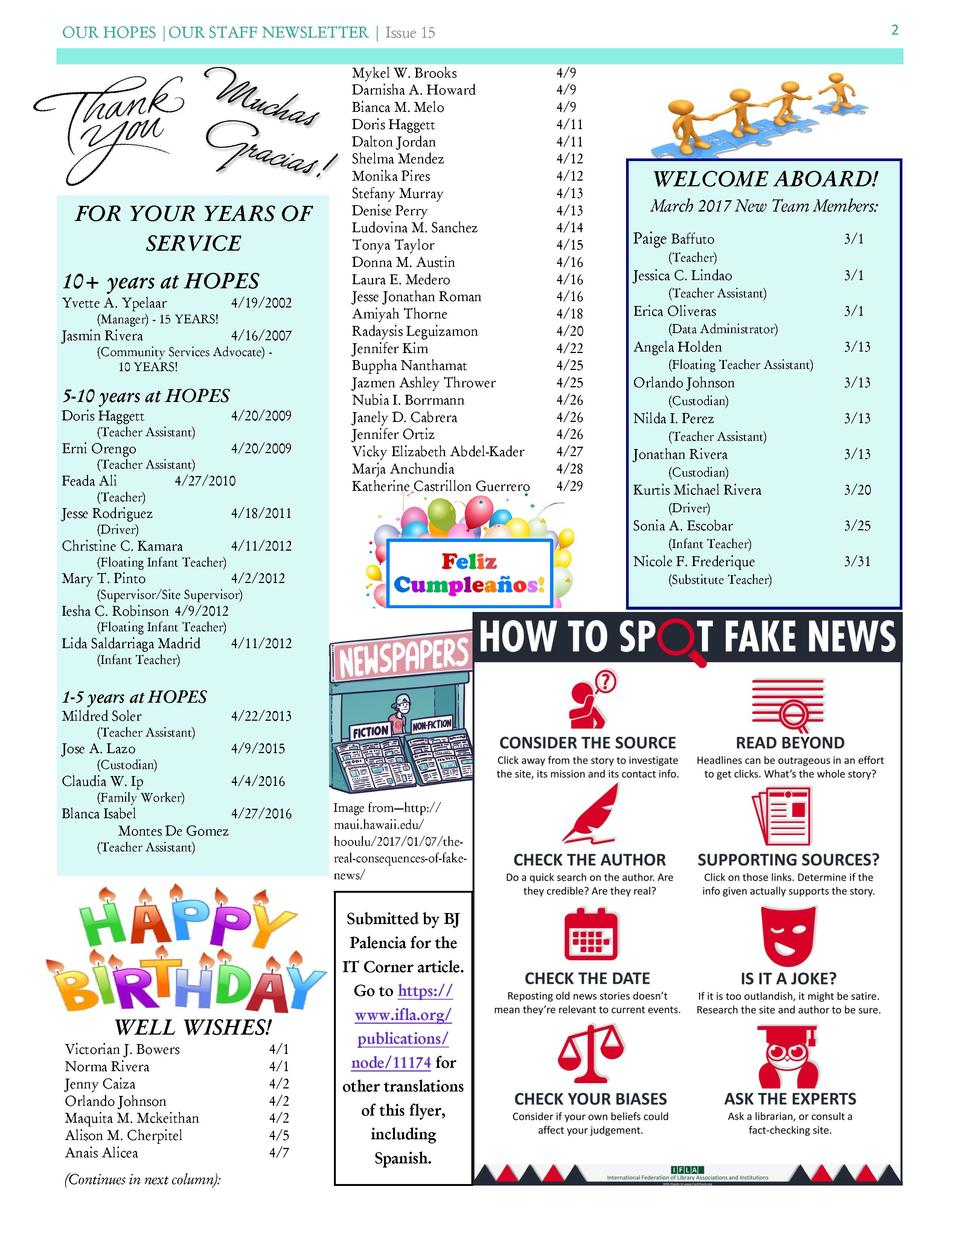 OUR HOPES  OUR STAFF NEWSLETTER   Issue 15  FOR YOUR YEARS OF SERVICE 10  years at HOPES Yvette A. Ypelaar  4 19 2002   Ma...